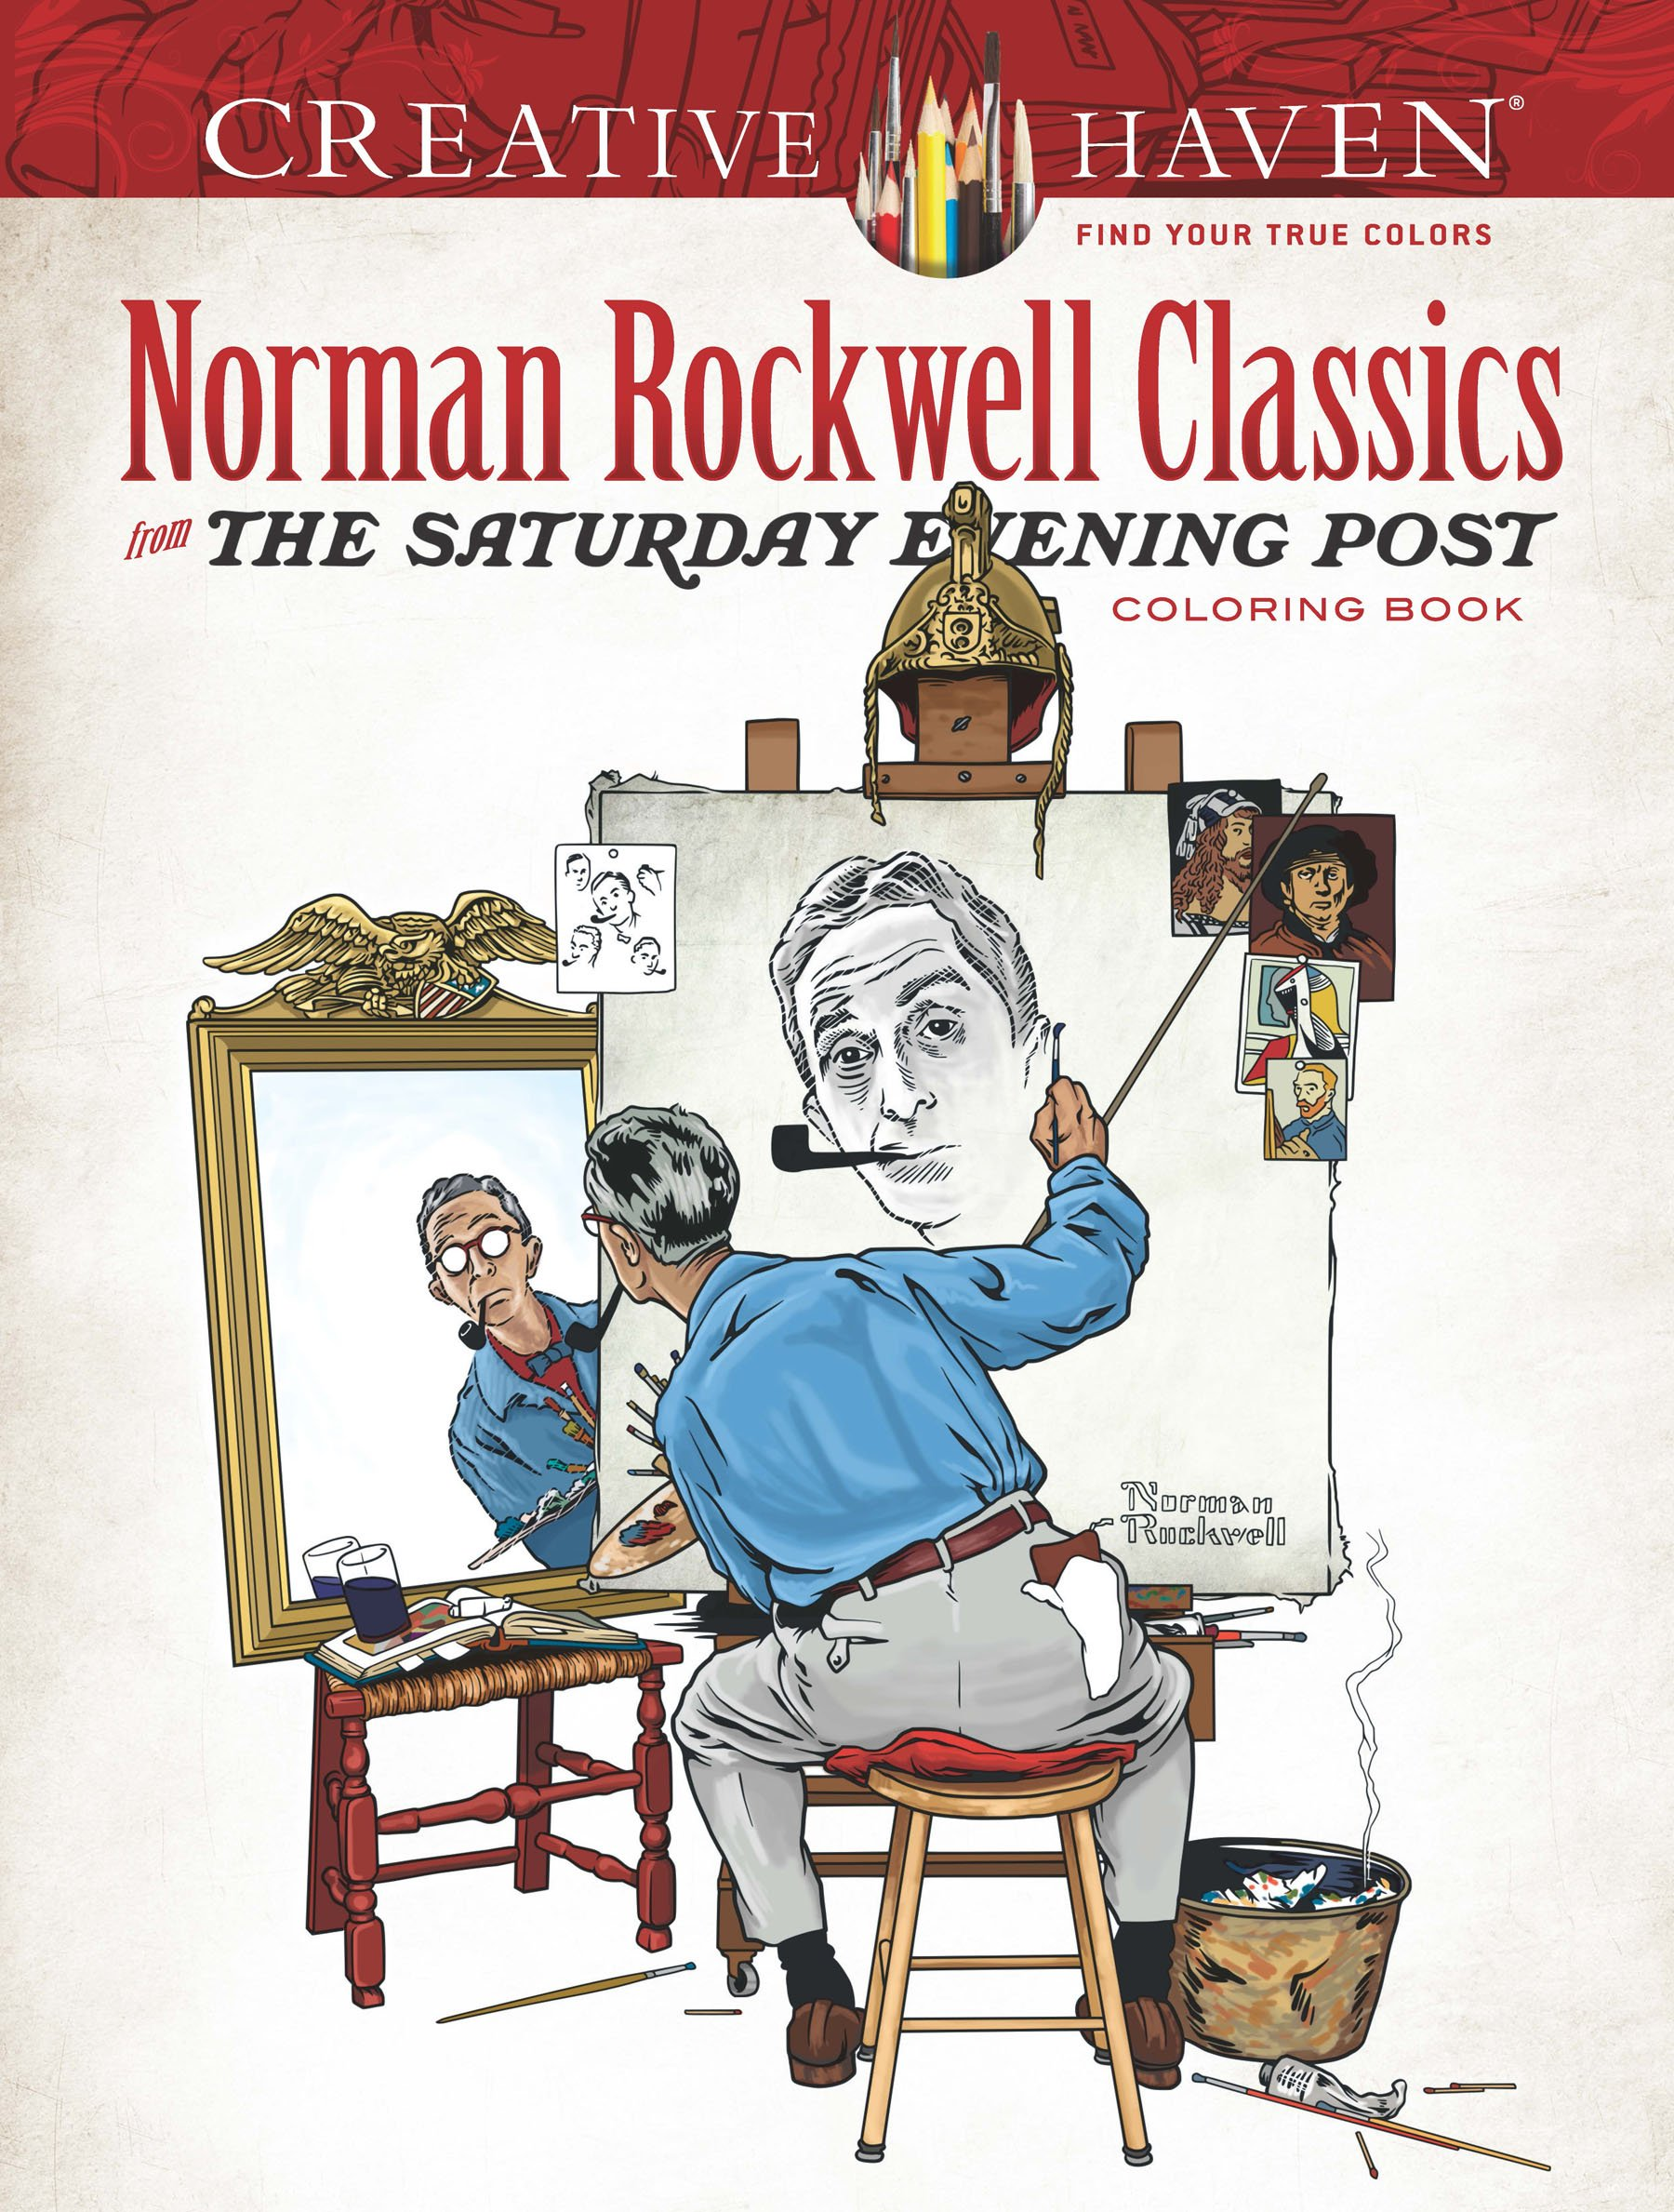 Download Creative Haven Norman Rockwell Classics from The Saturday Evening Post Coloring Book (Adult Coloring) pdf